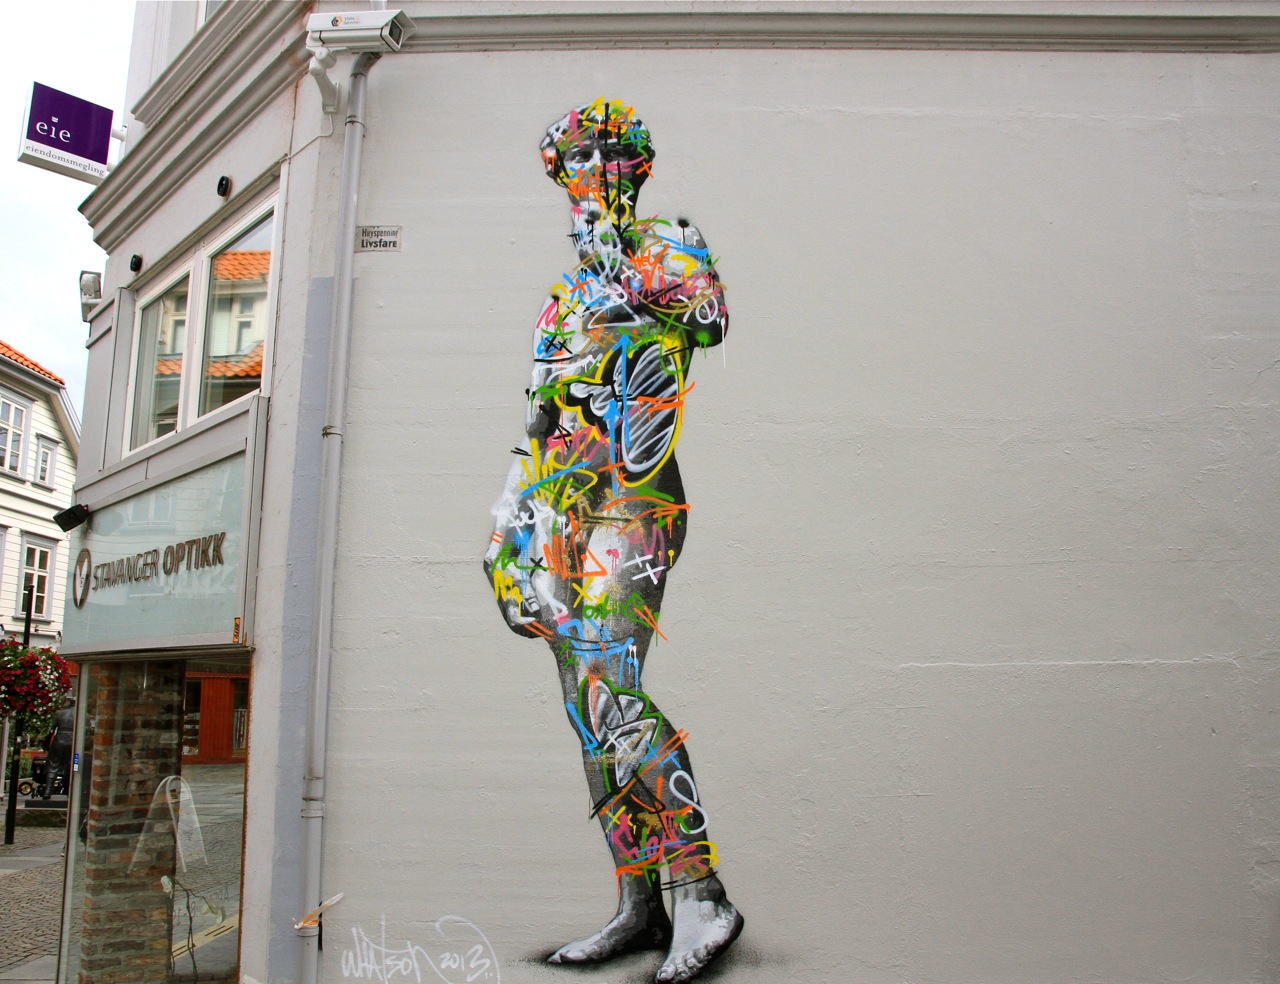 Nuart 2013: Street Pieces, Part 1: Martin Whatson IMG_1149.jpg